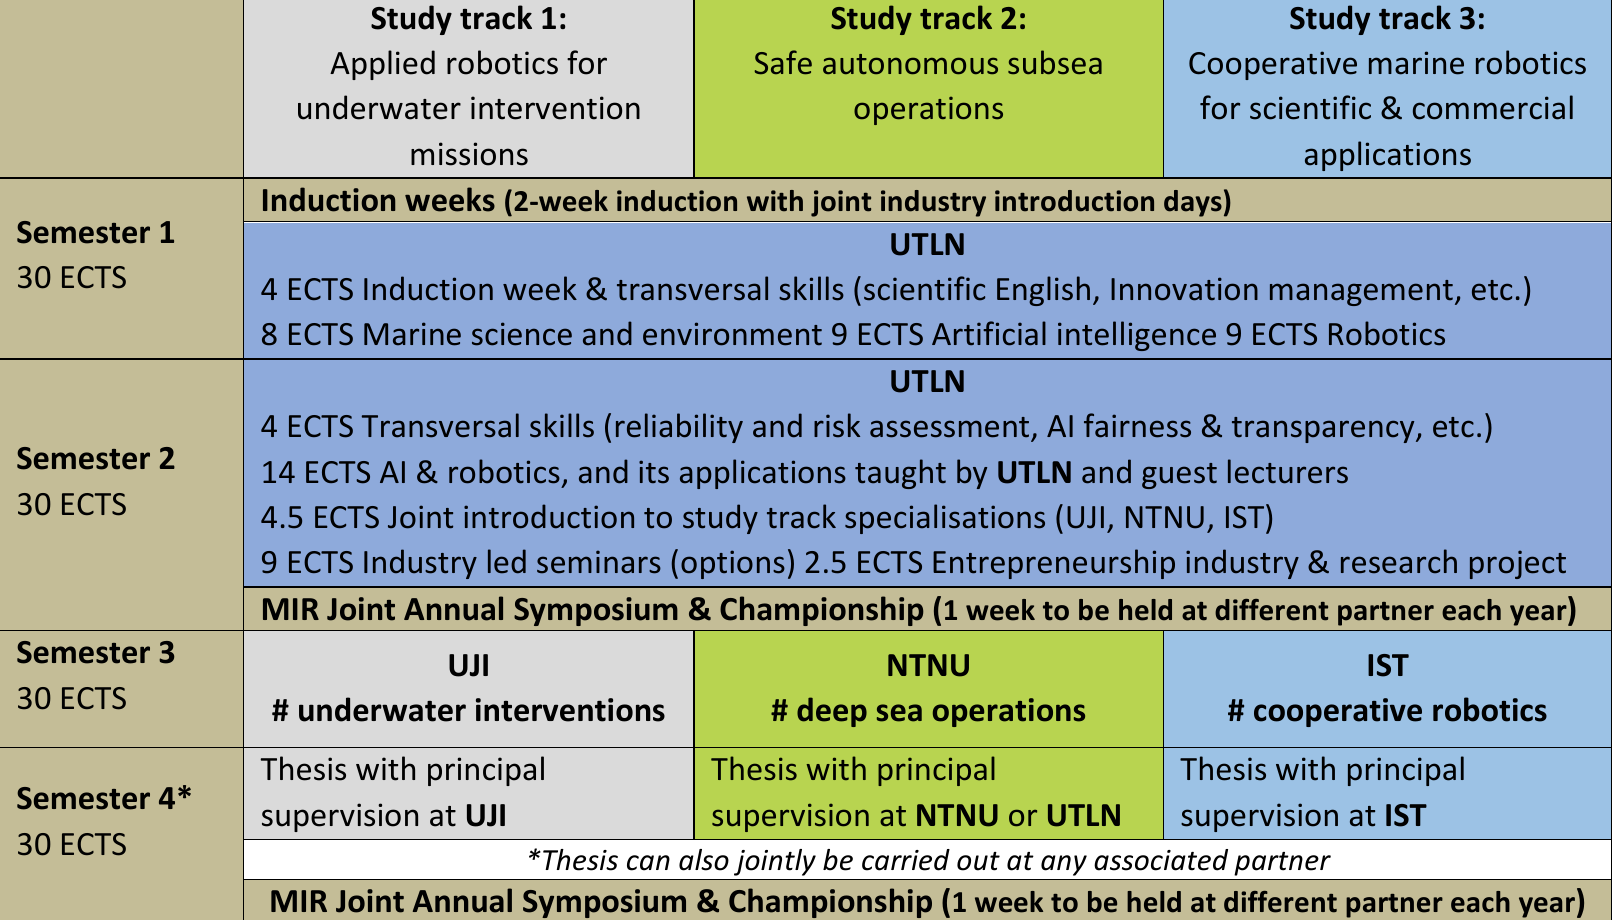 2-year MIR programme with first at the University of Toulon, and the second year at IST-UL, or NTNU, or UJI.